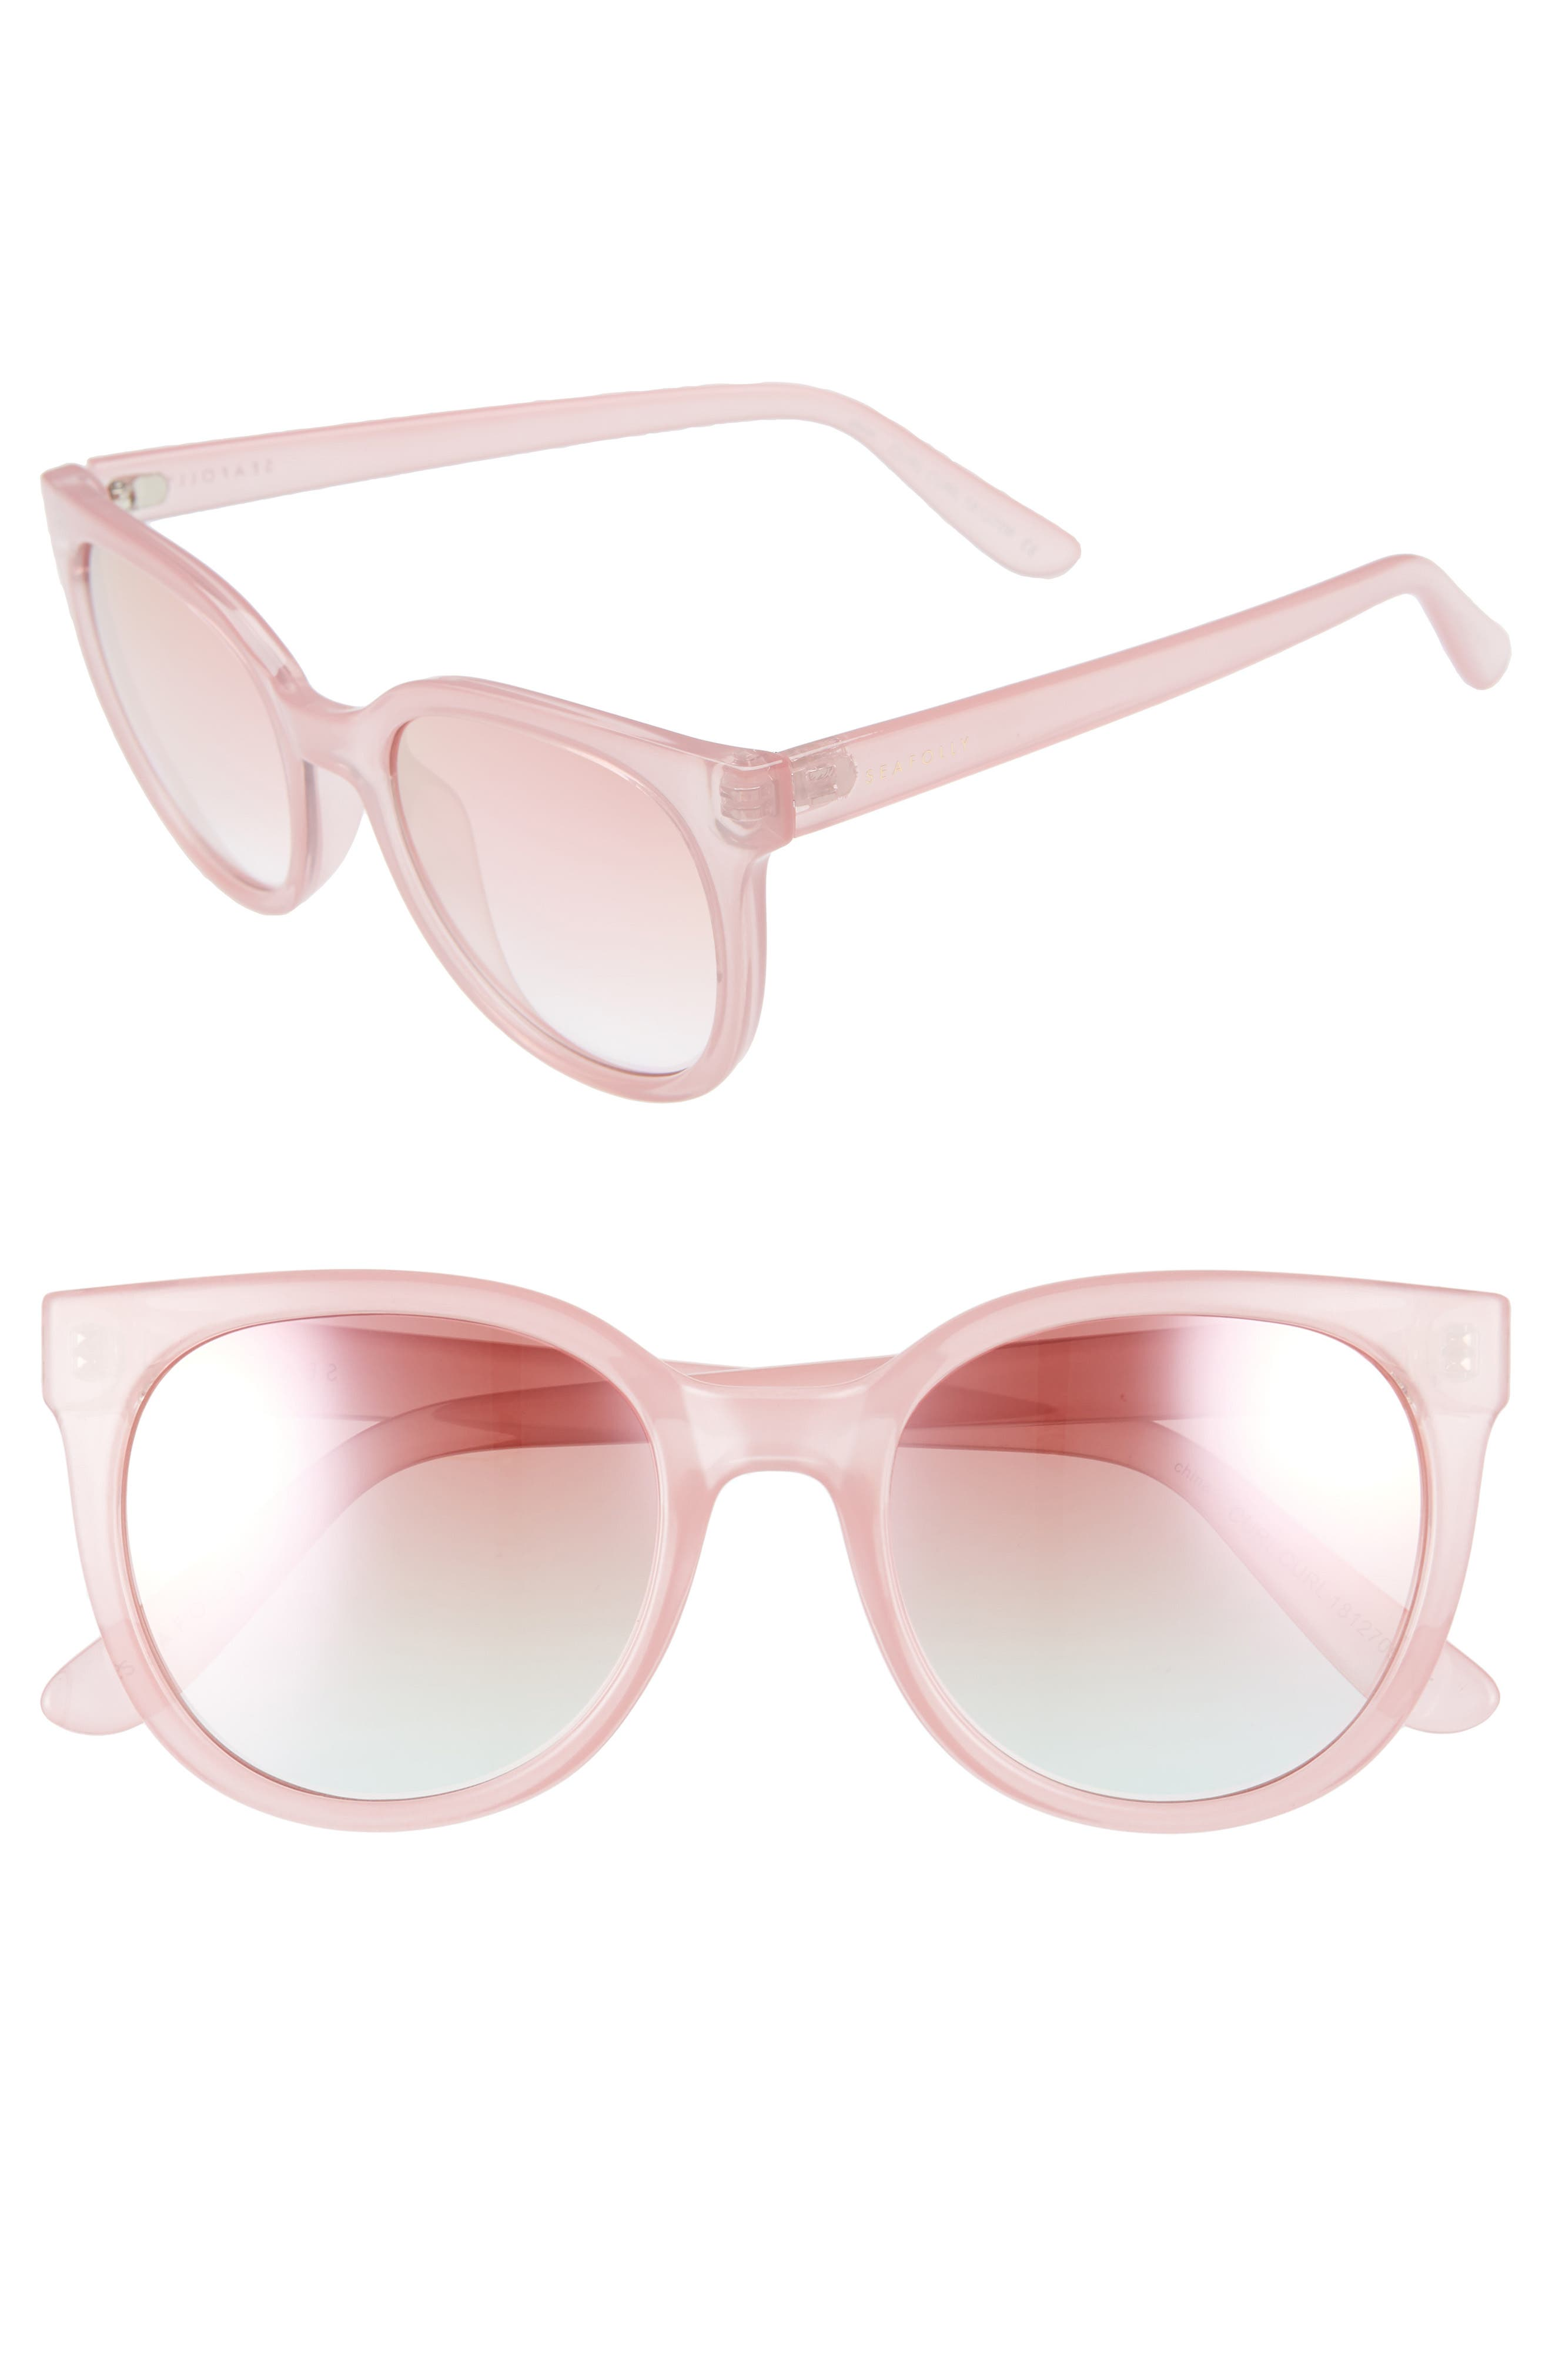 SEAFOLLY CURL CURL 53MM SUNGLASSES - CANDY PINK/ PINK